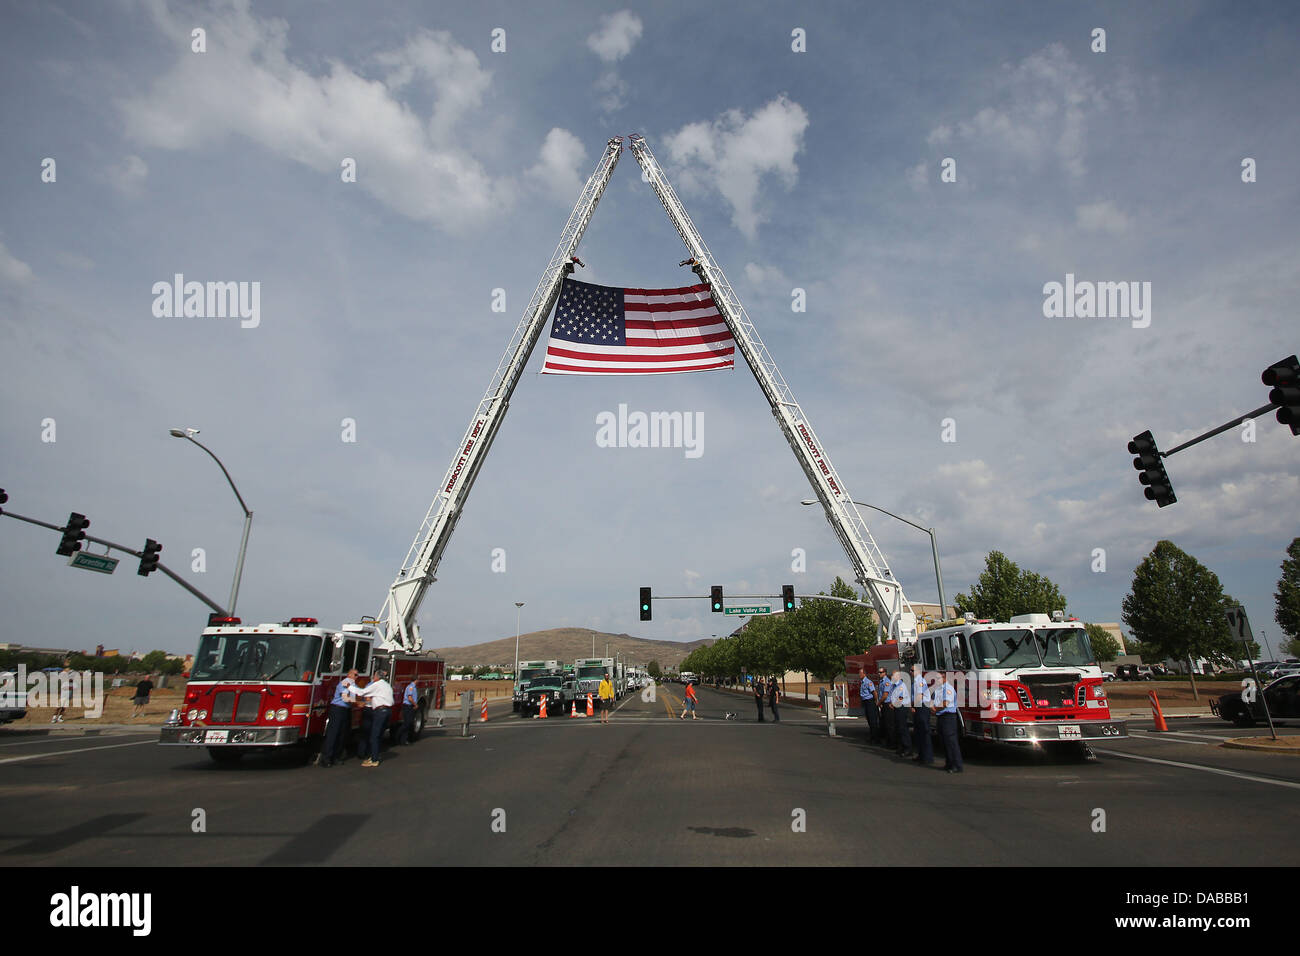 Prescott Valley, AZ, USA. 9th July, 2013. Two fire engines drape an American flag outside of Tim's Toyota Center - Stock Image